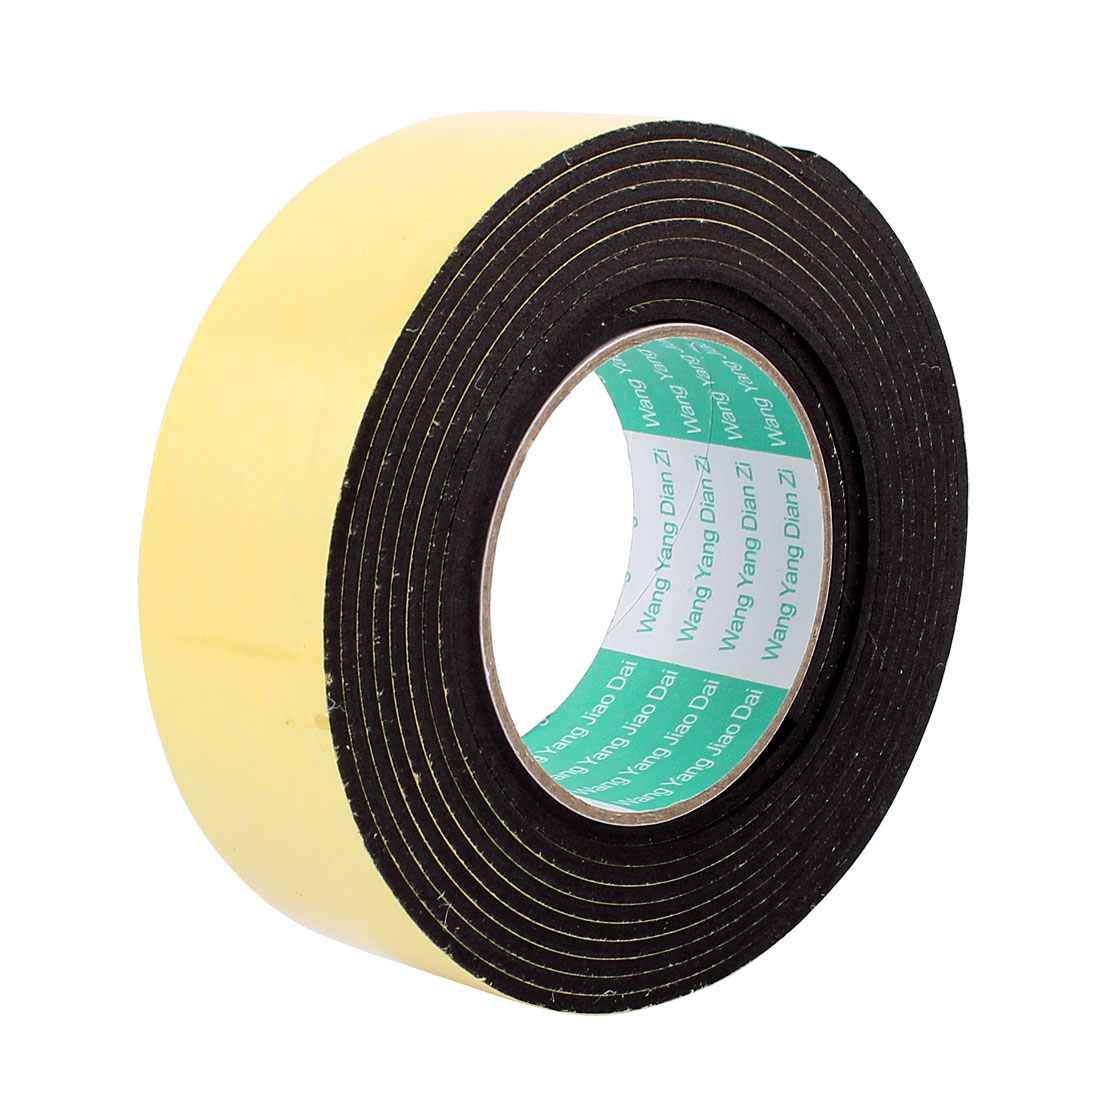 4.5CM Wide 3Meters Length 4MM Thick Single Sided Sealing Shockproof Sponge Tape